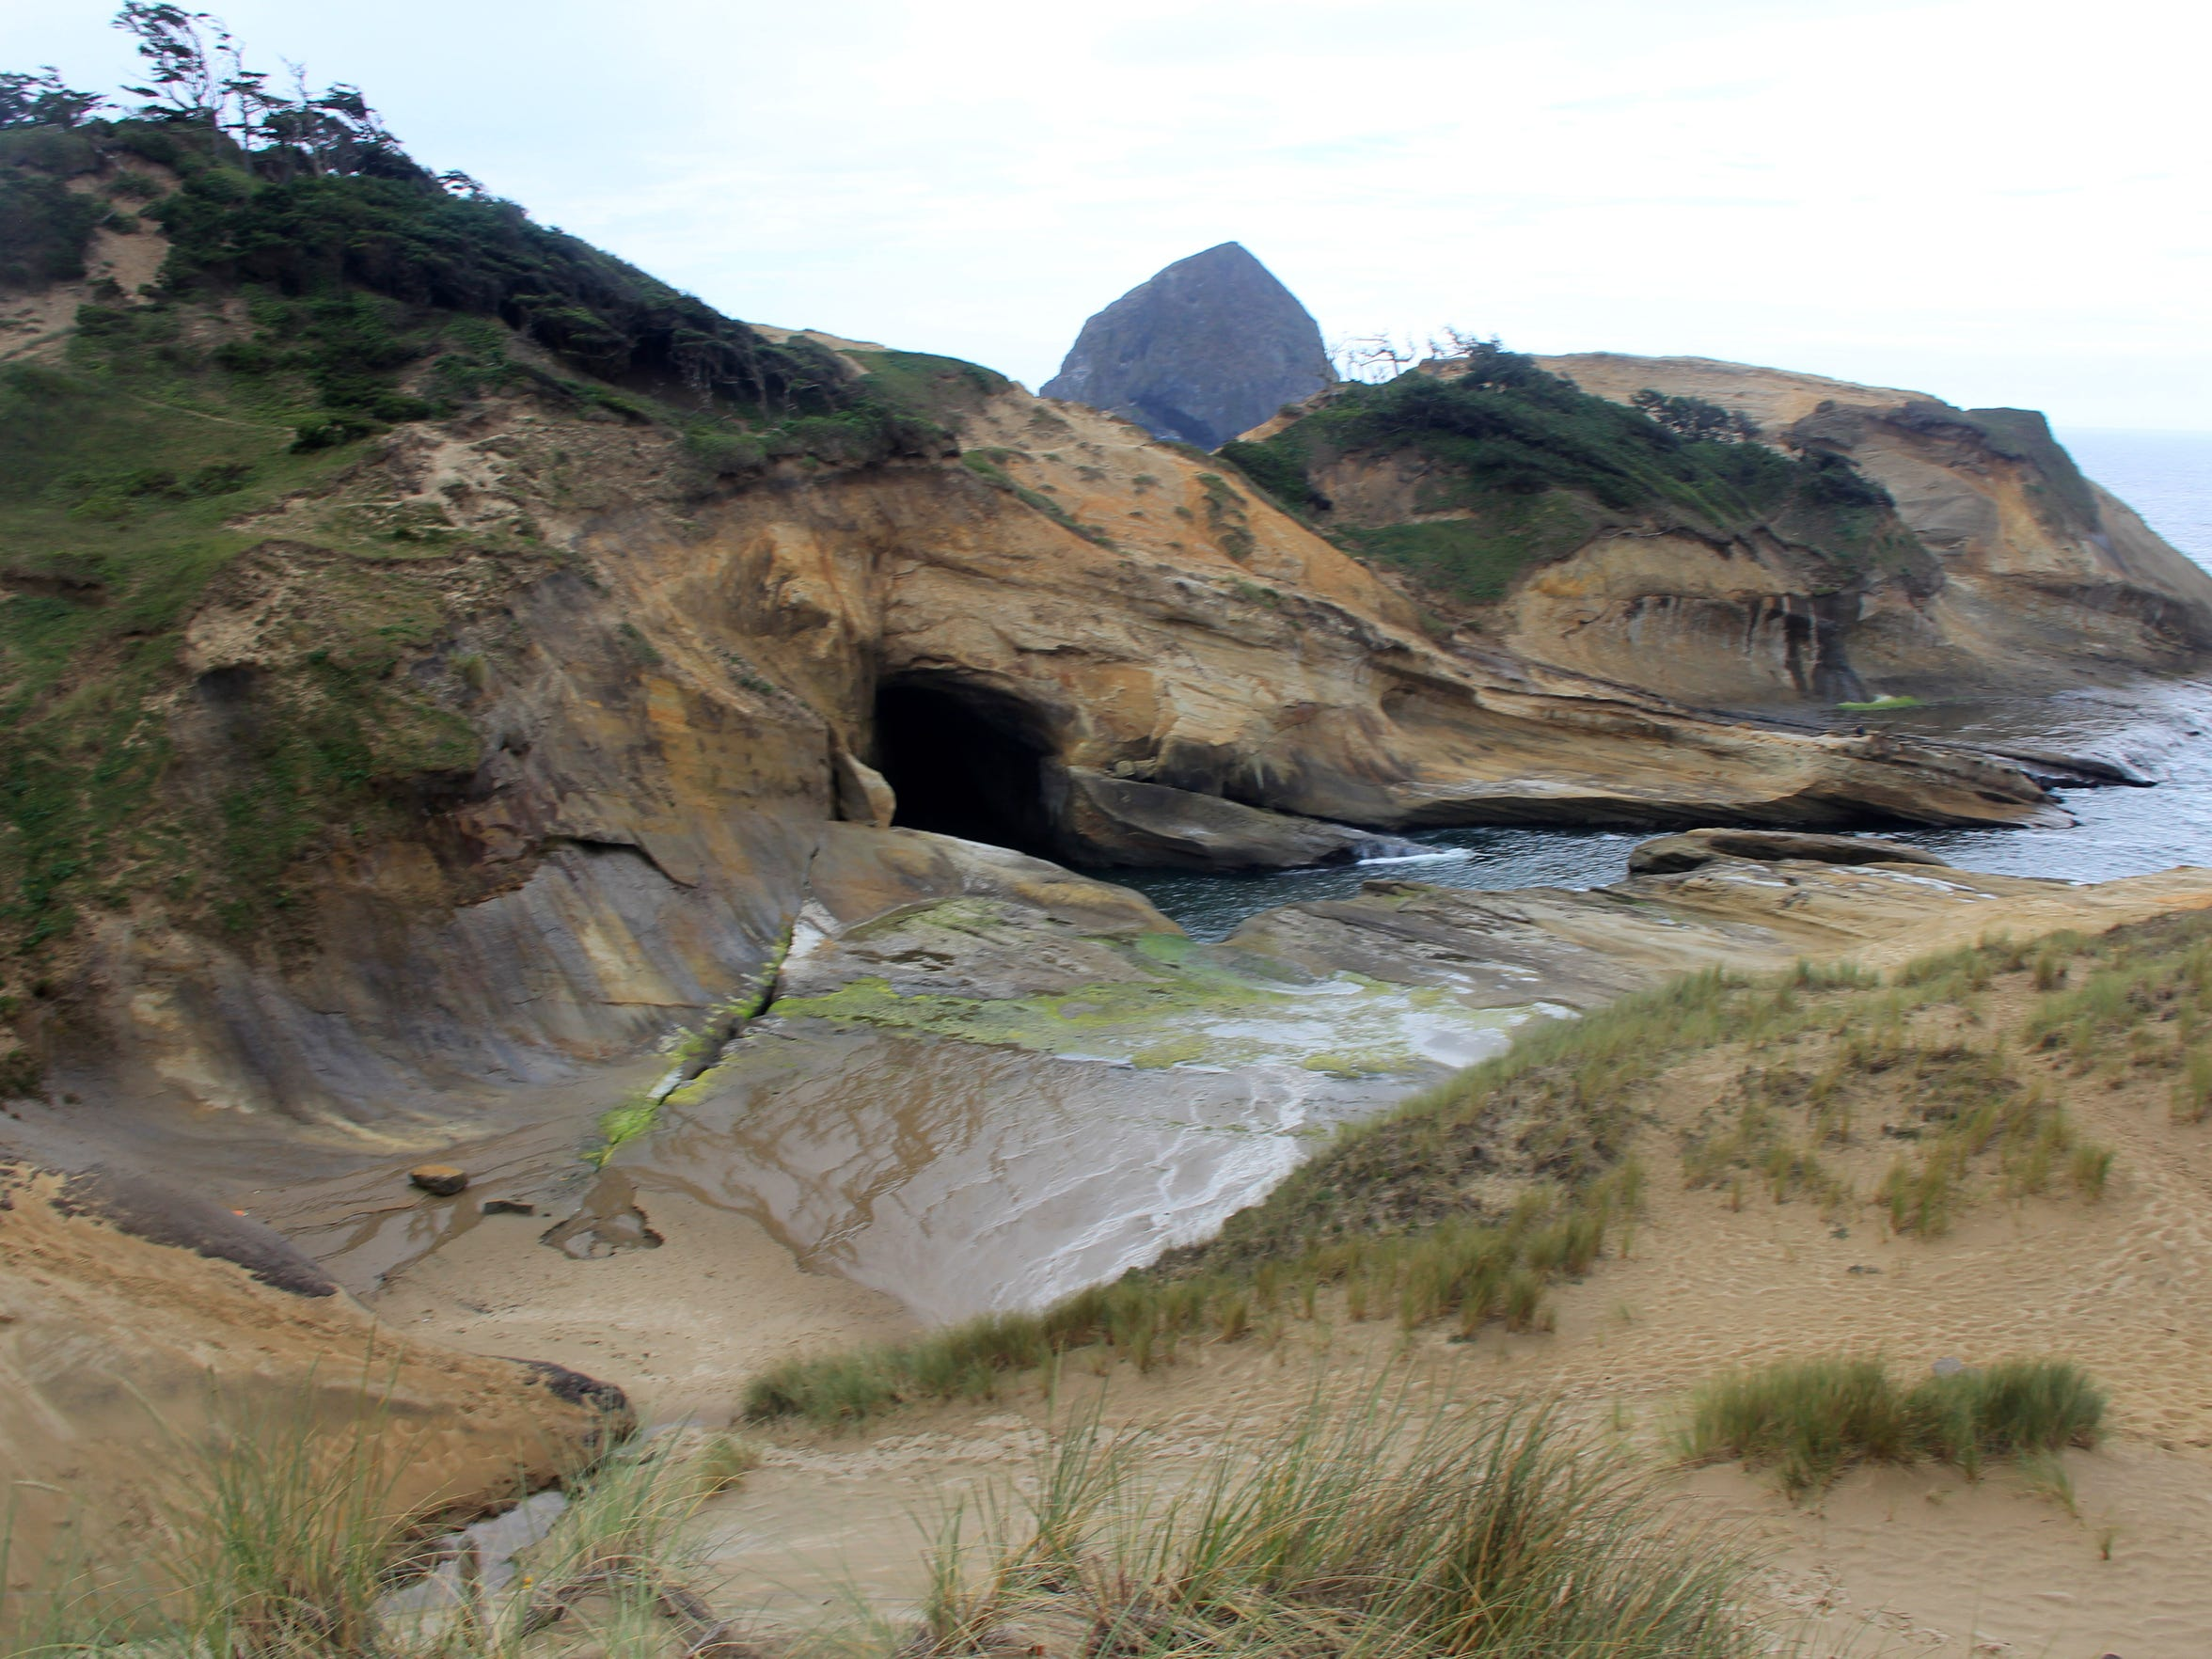 The Punchbowl is a notoriously dangerous spot at Cape